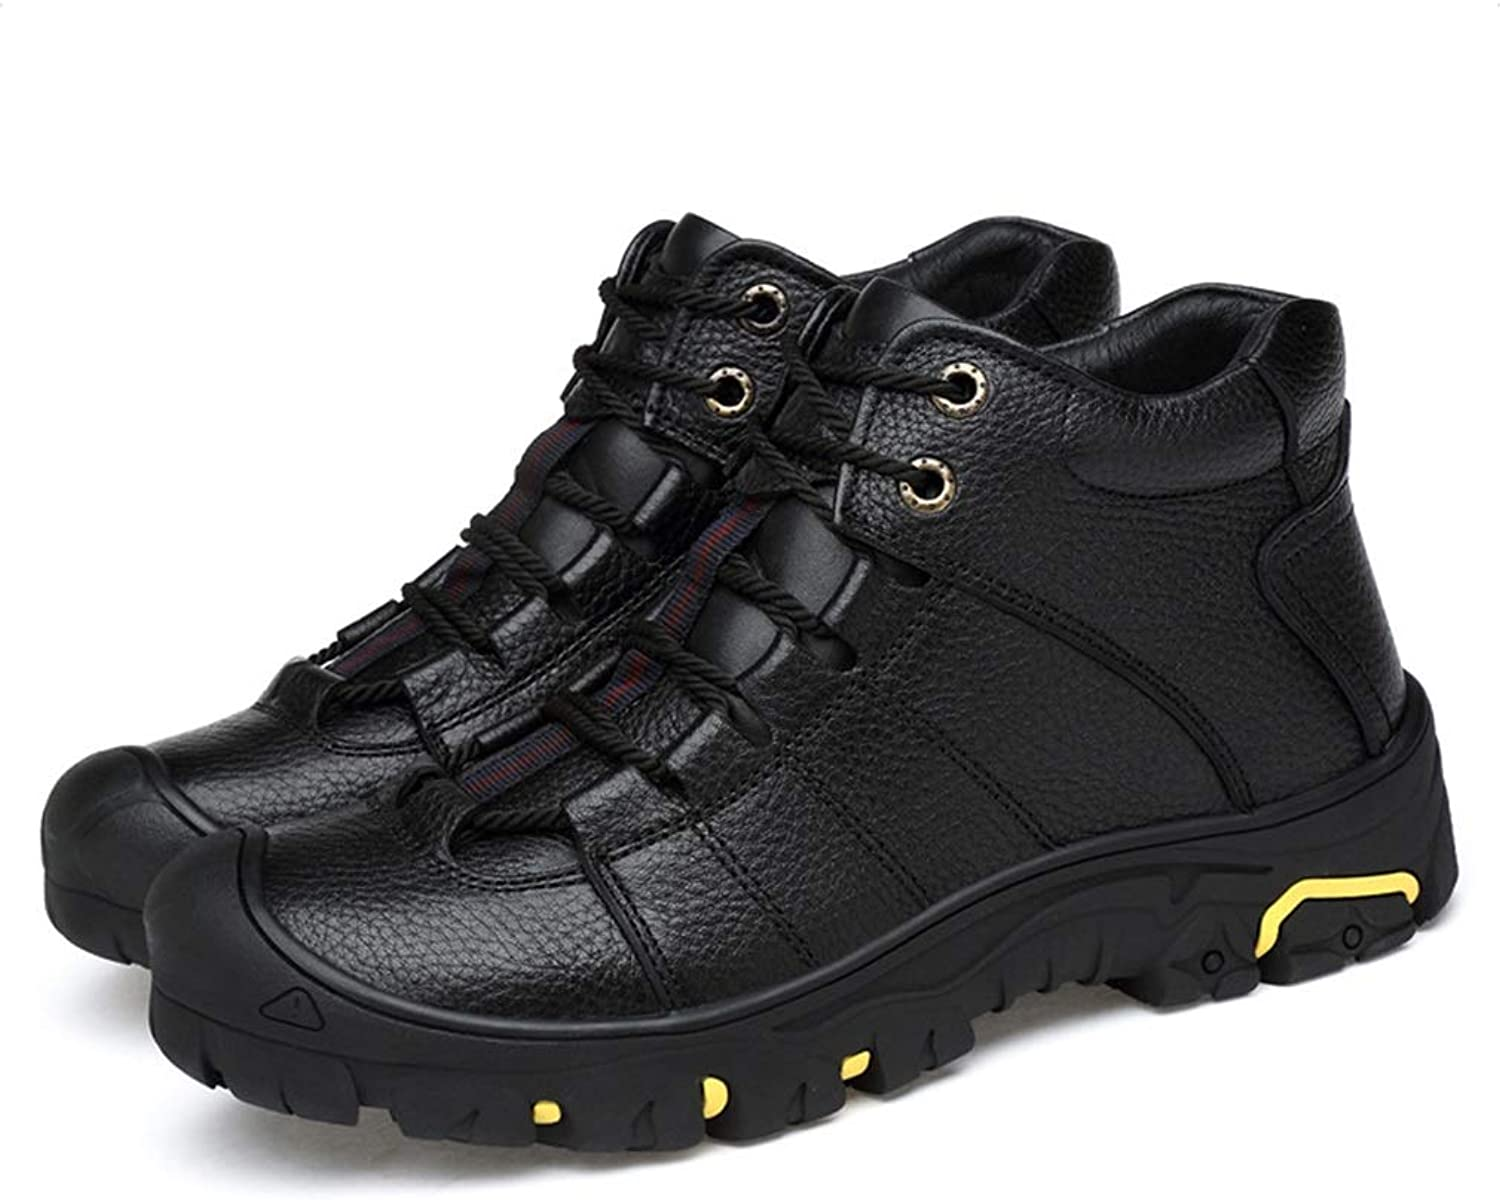 Men's Boots New Keep Warm Martin Boots Outdoor High-top Non Slip Tooling shoes Fall Winter Work Driving shoes (color   A, Size   42)